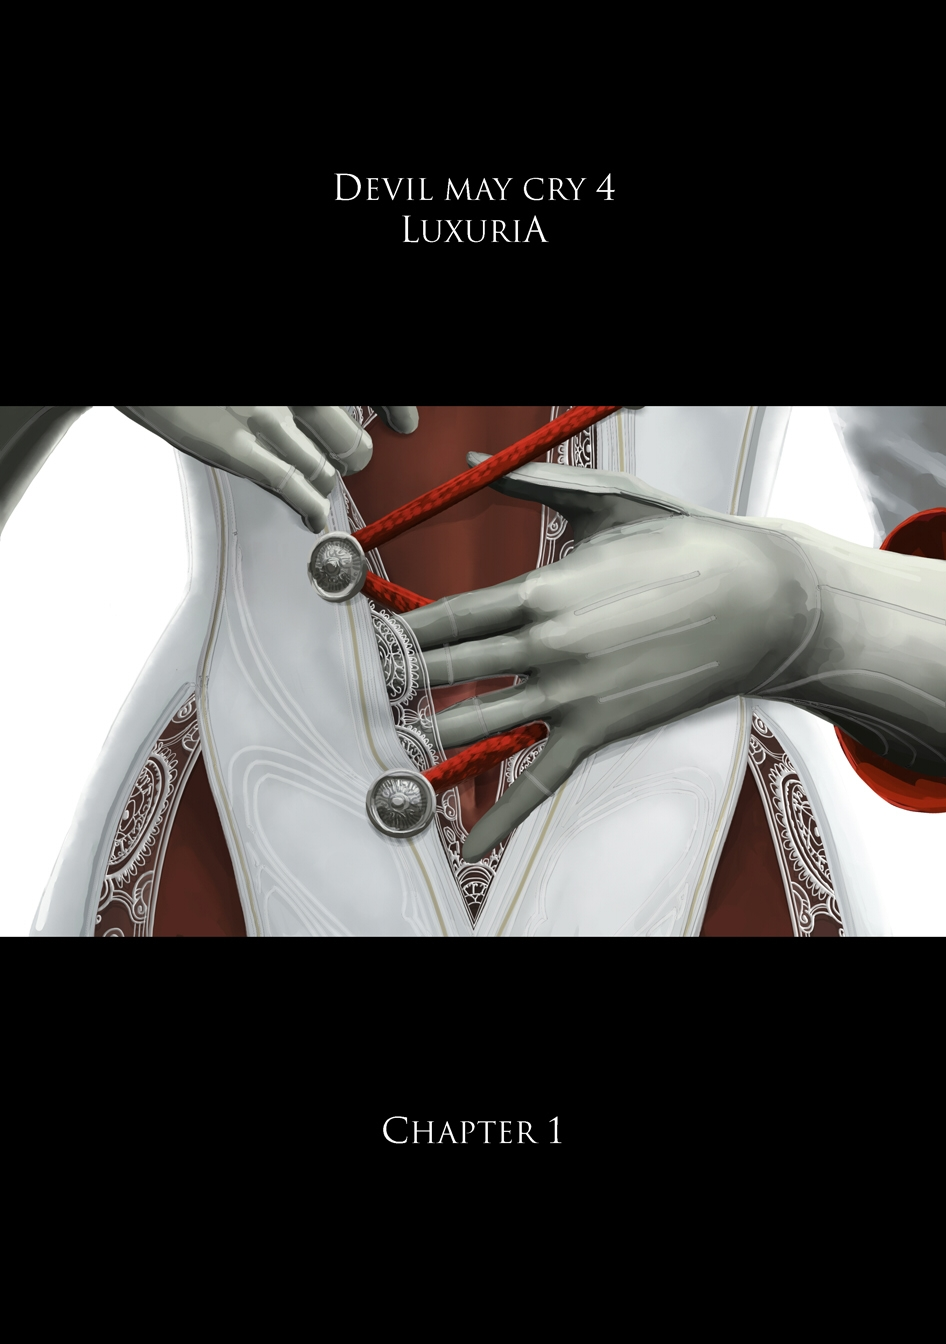 Luxuria (Devil May Cry)